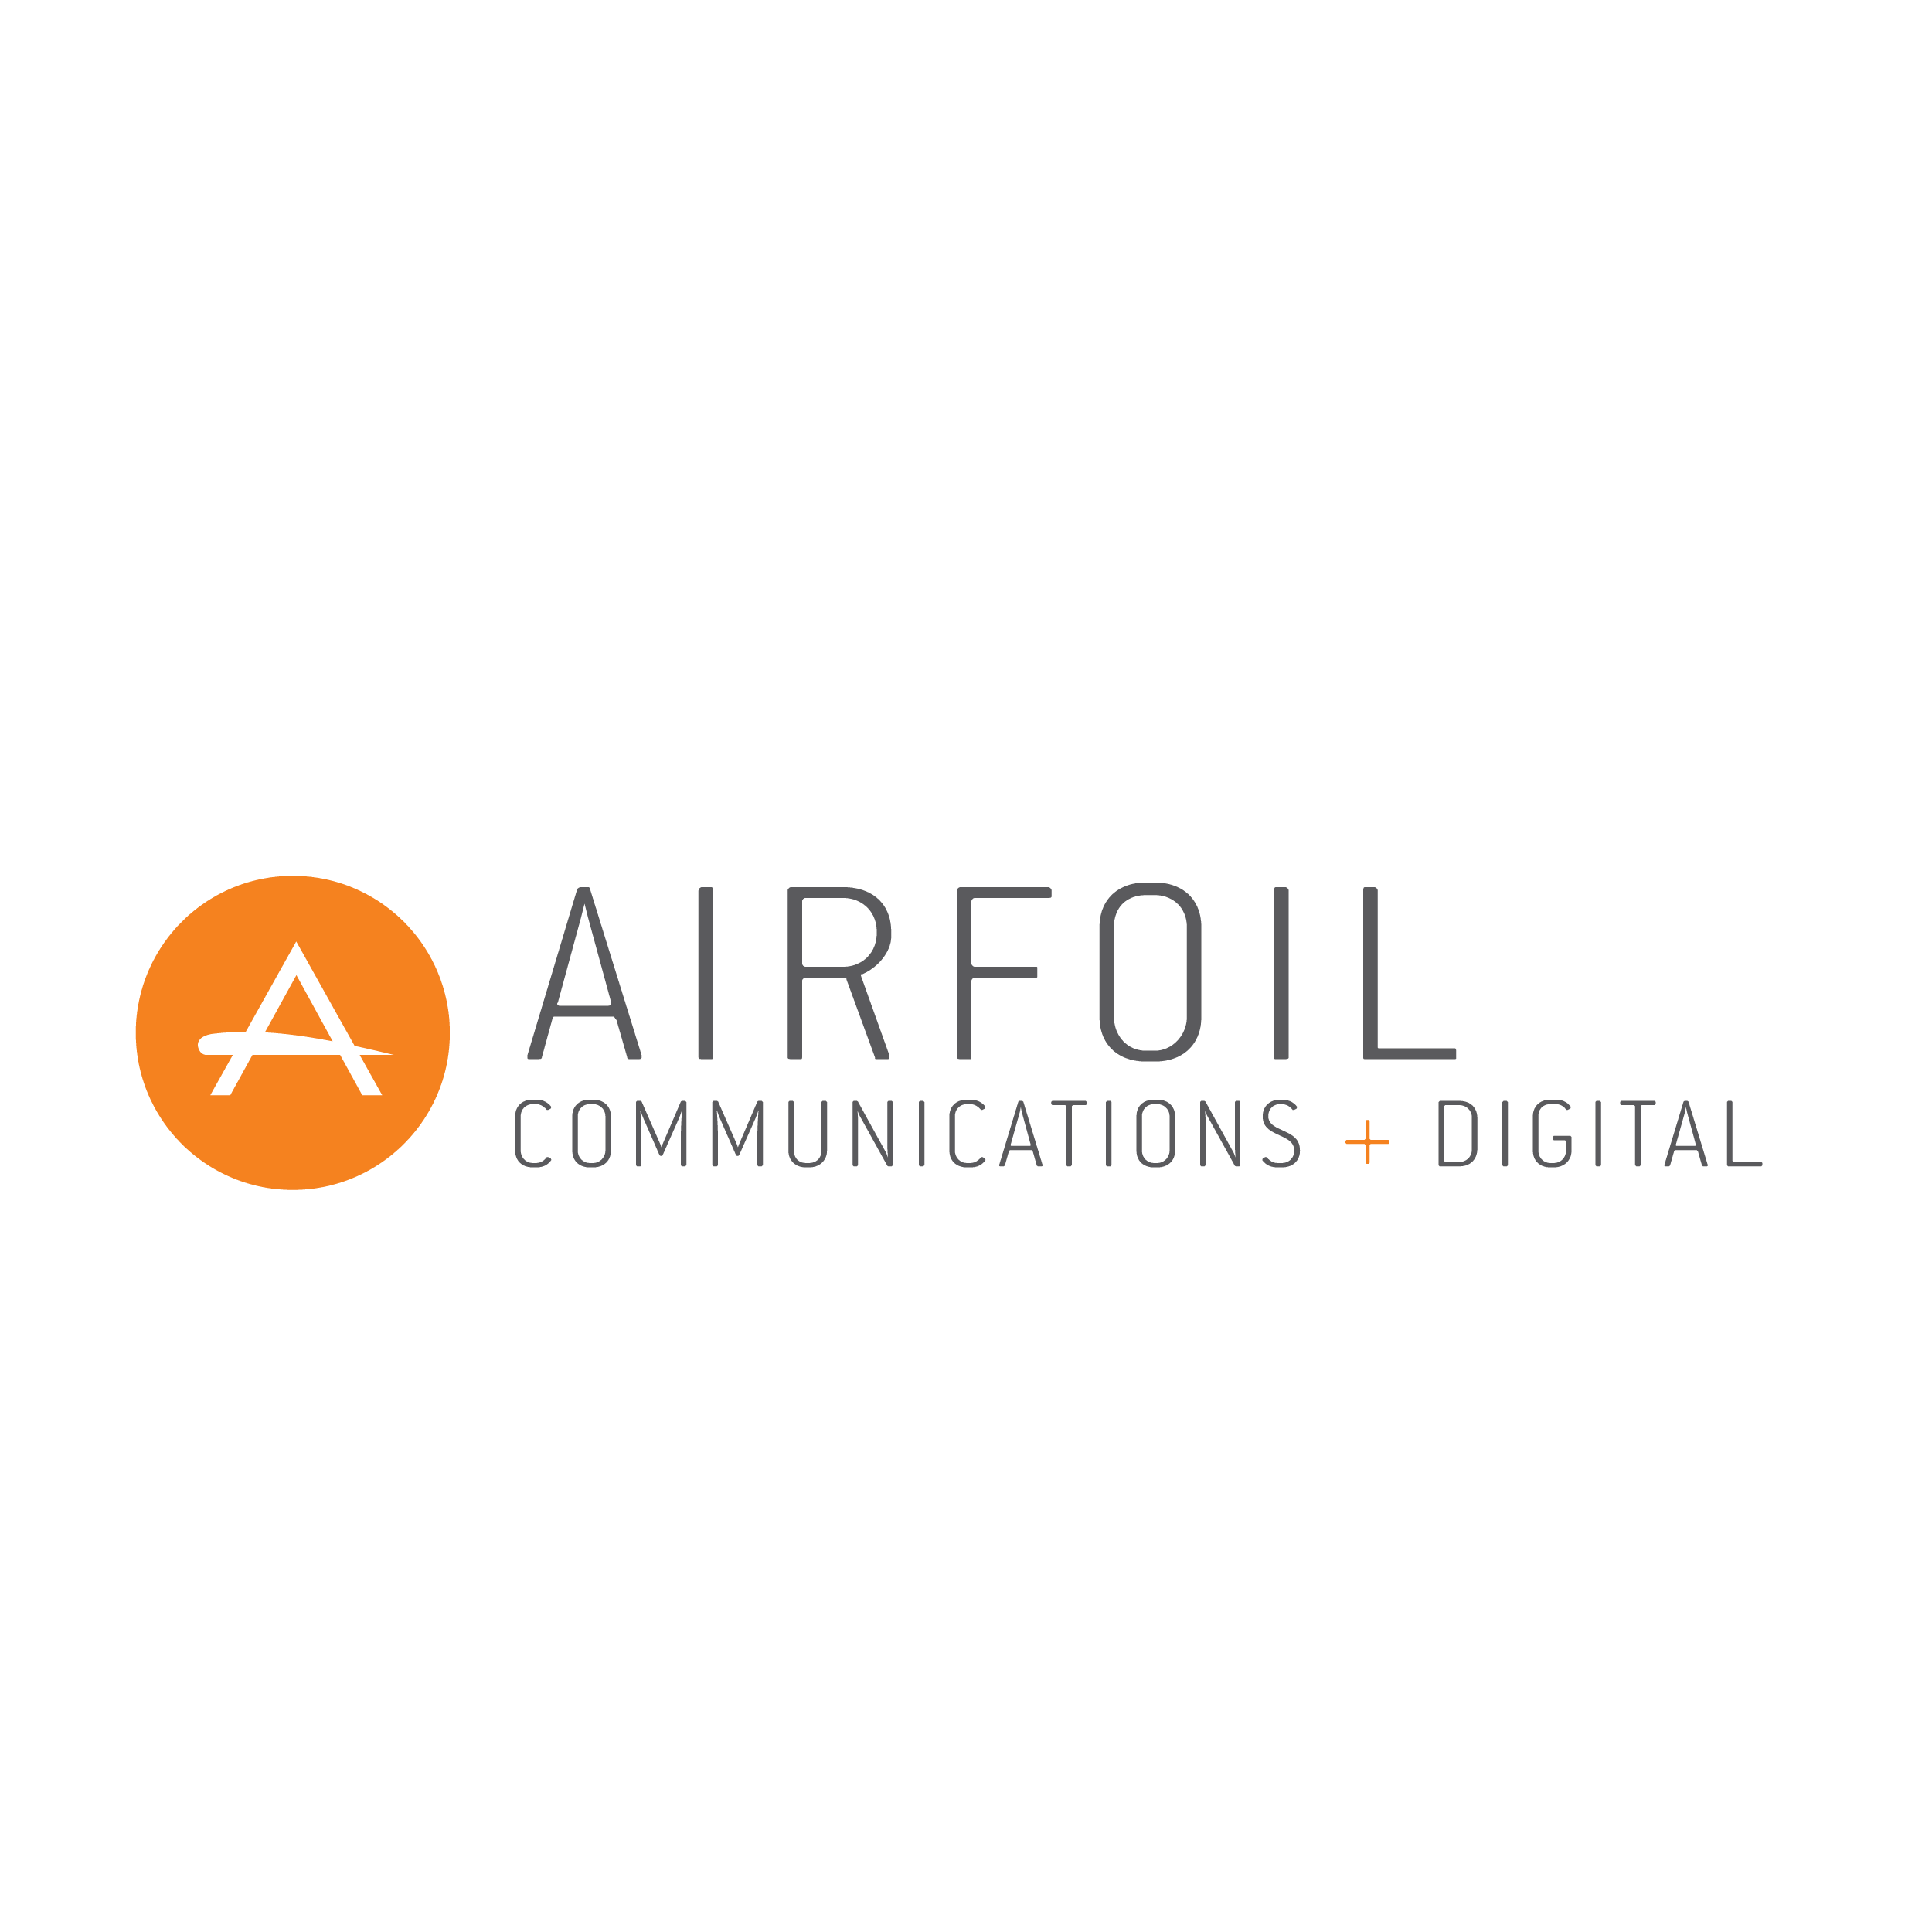 Airfoil Group Signs Three New Clients